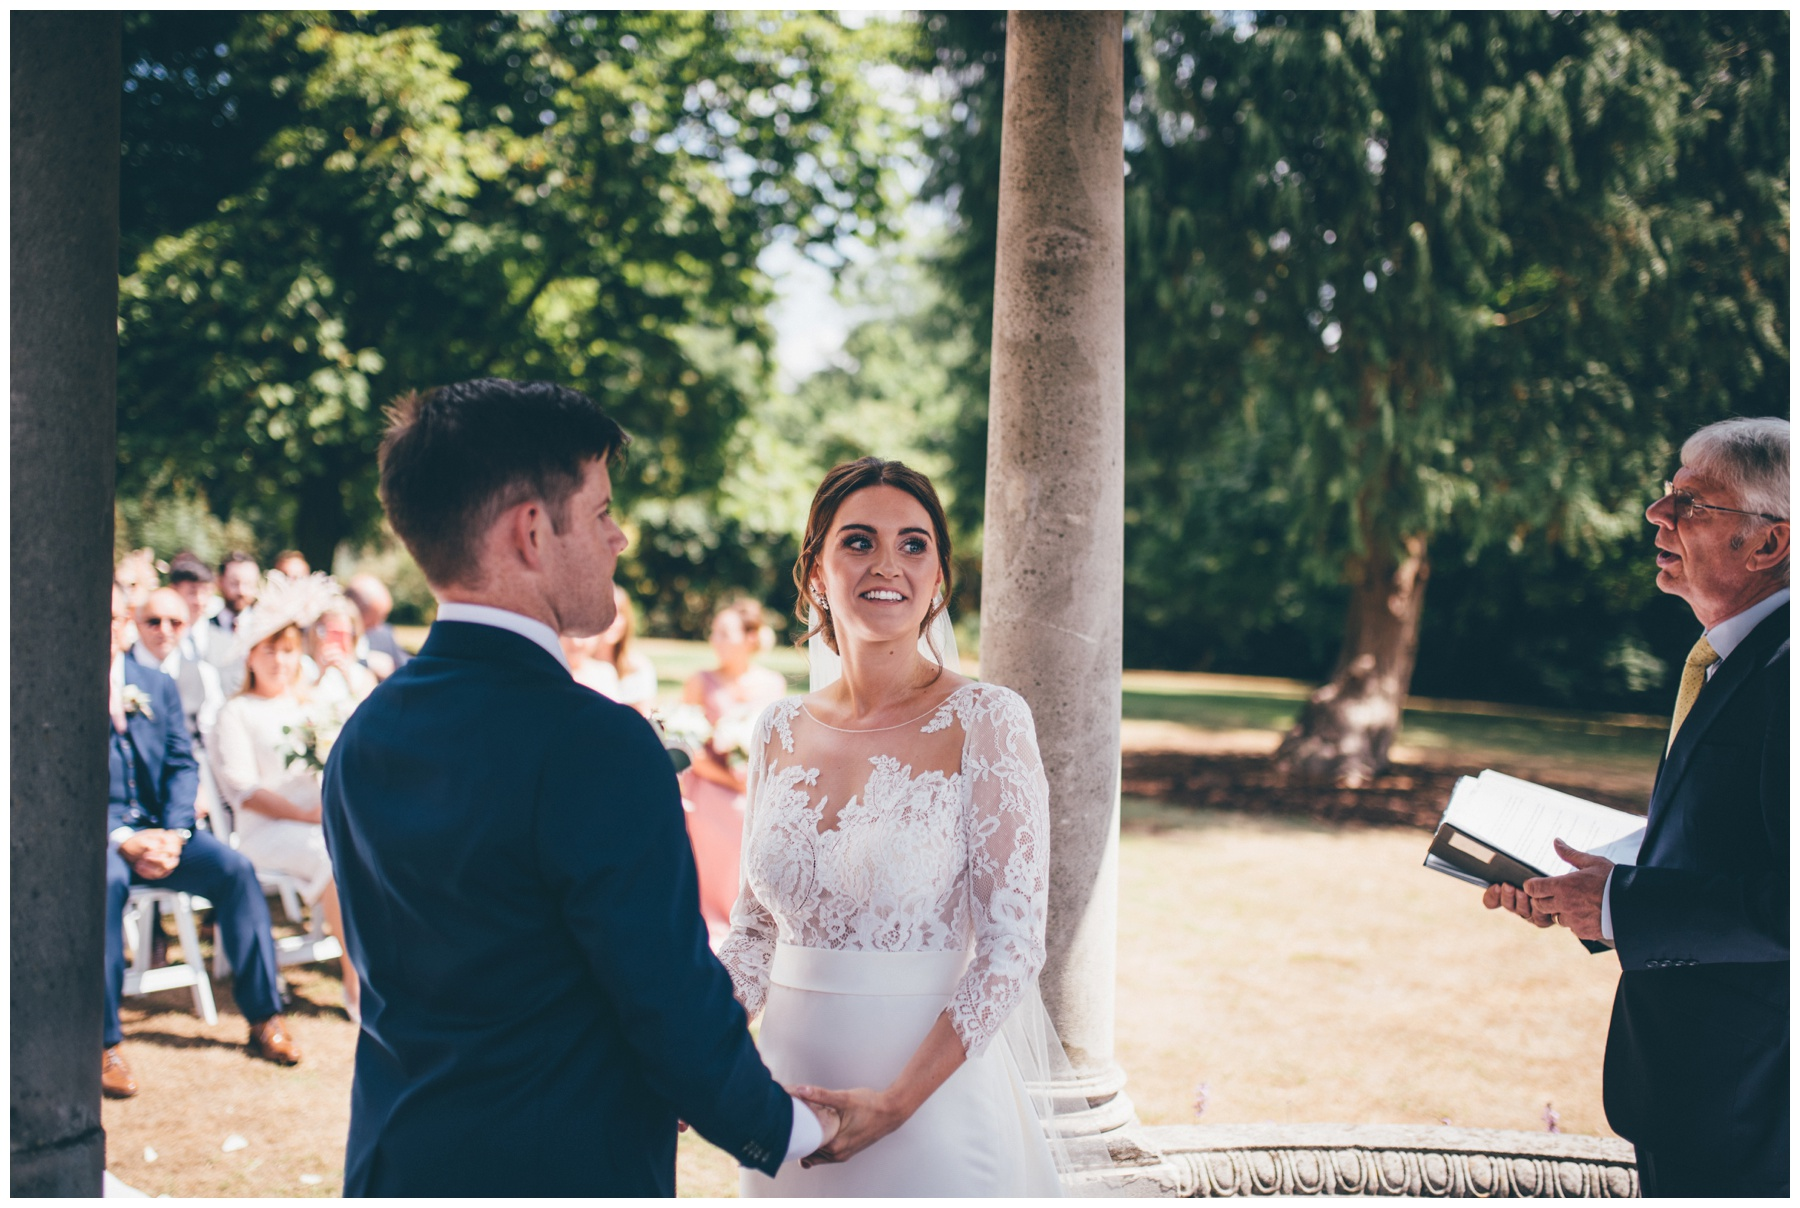 Stunning outdoor wedding ceremony at Tilstone House in Cheshire.